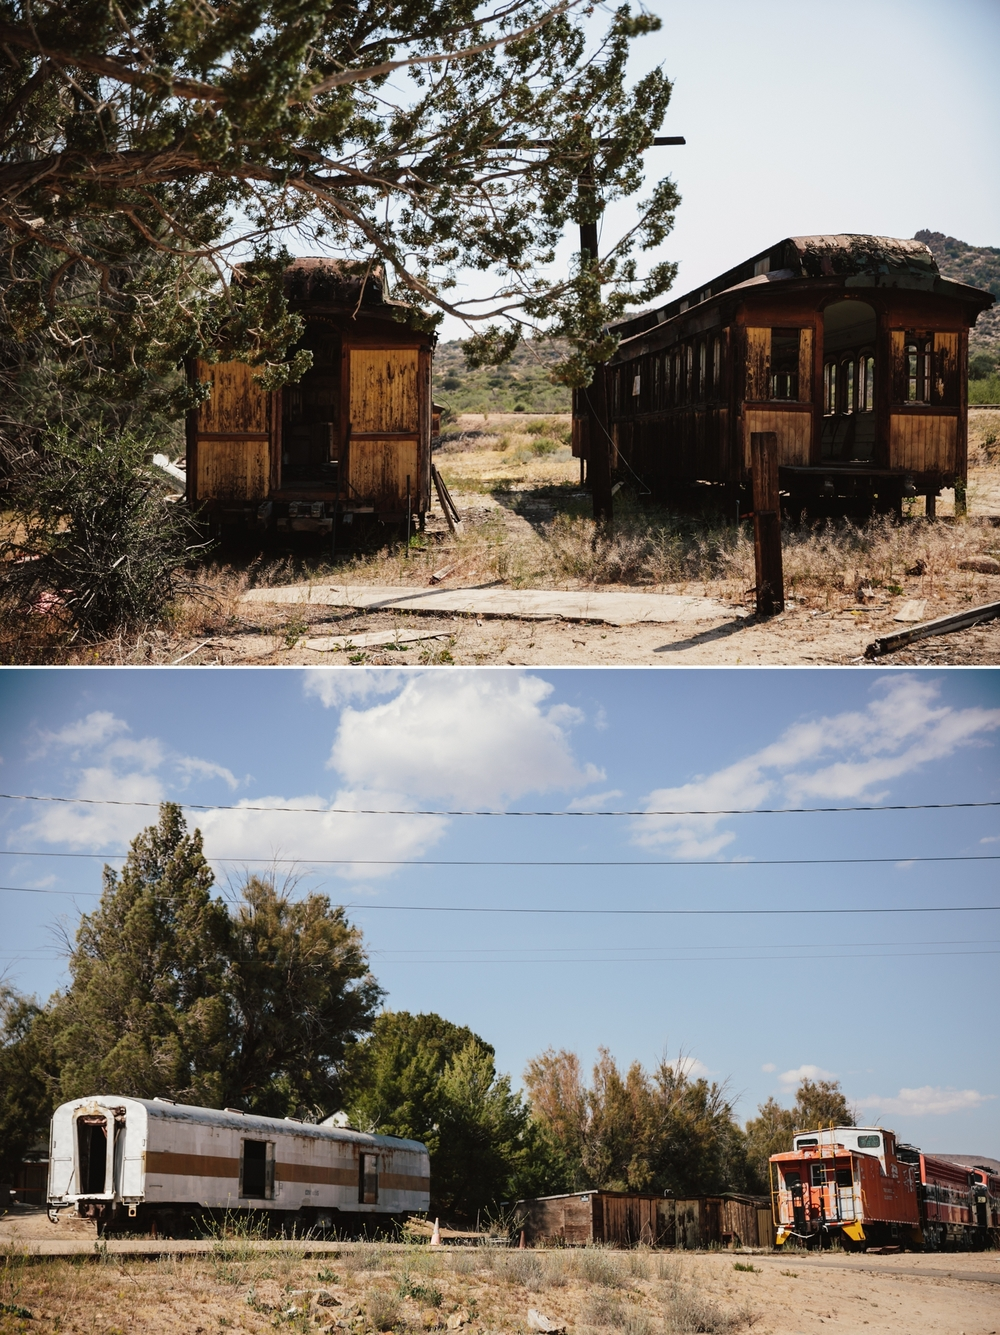 Abandoned trains in Jacumba by San Diego photographer Paige Nelson